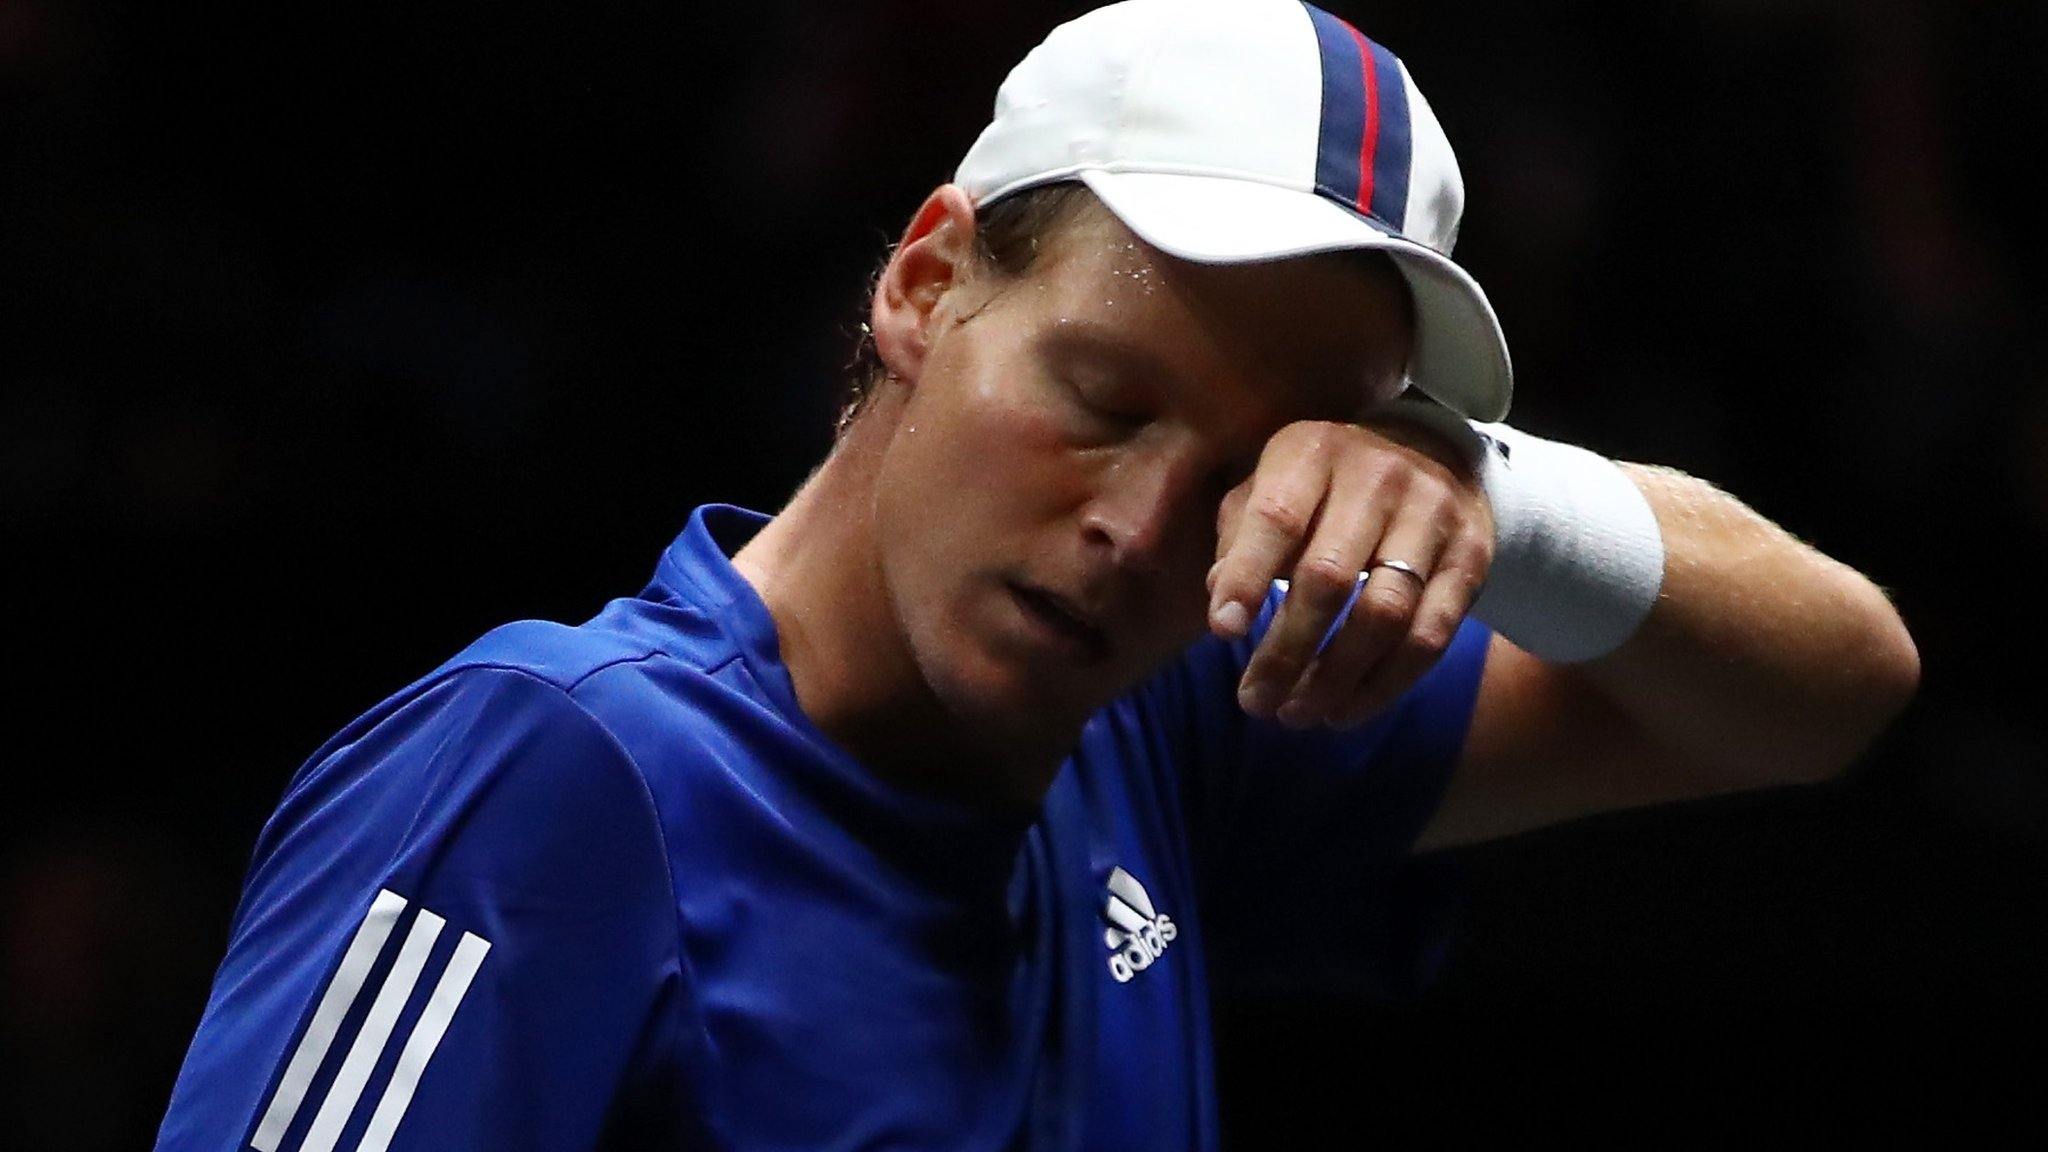 Tomas Berdych to miss rest of season because of back pain